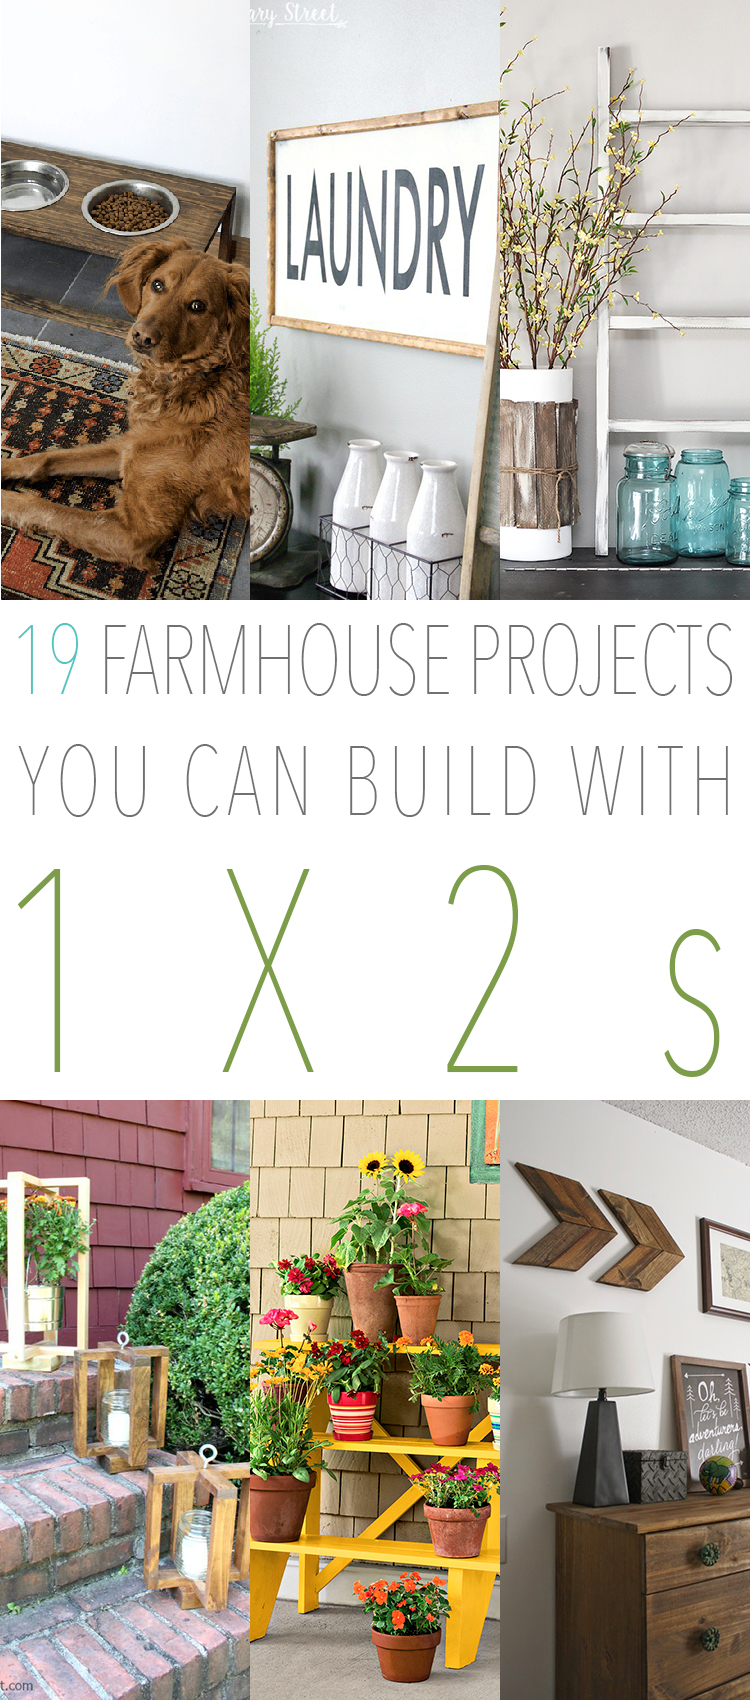 19 DIY Farmhouse Projects You Can Build with 1x2s